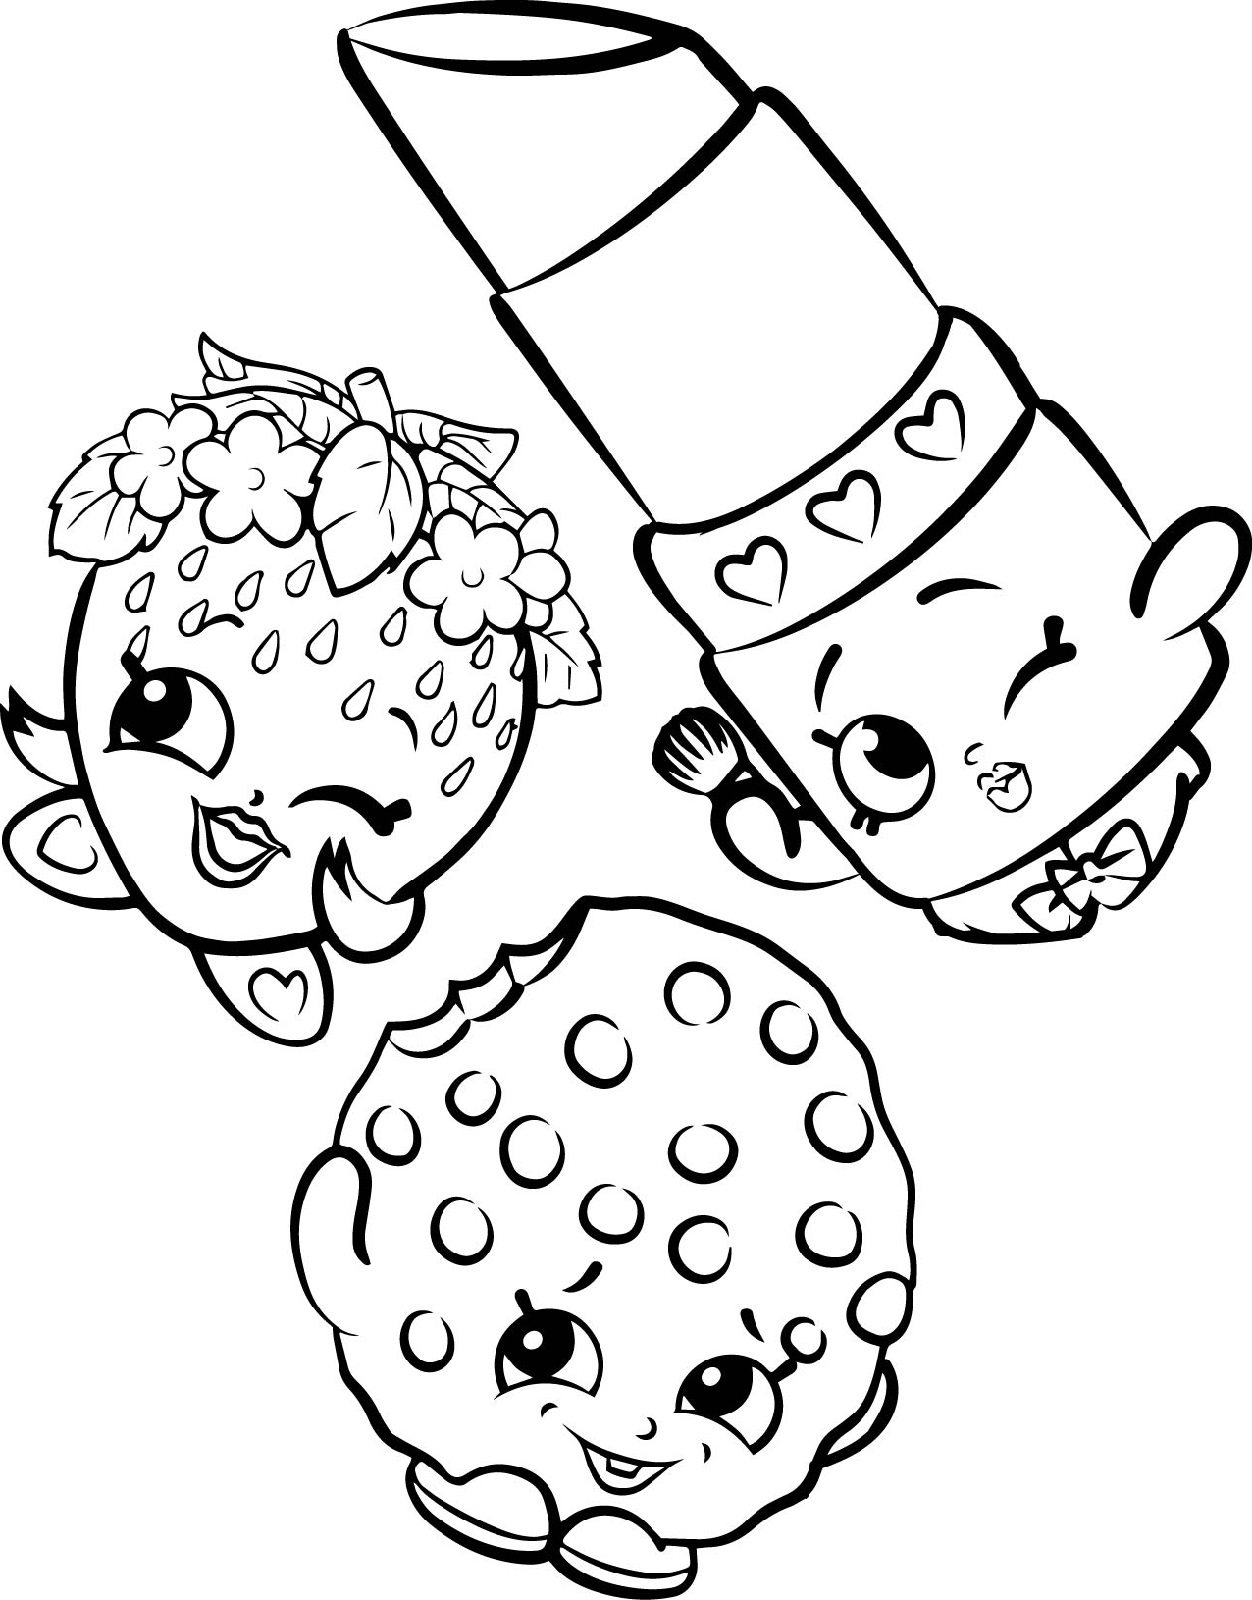 lippy-lips-coloring-page-lips-3